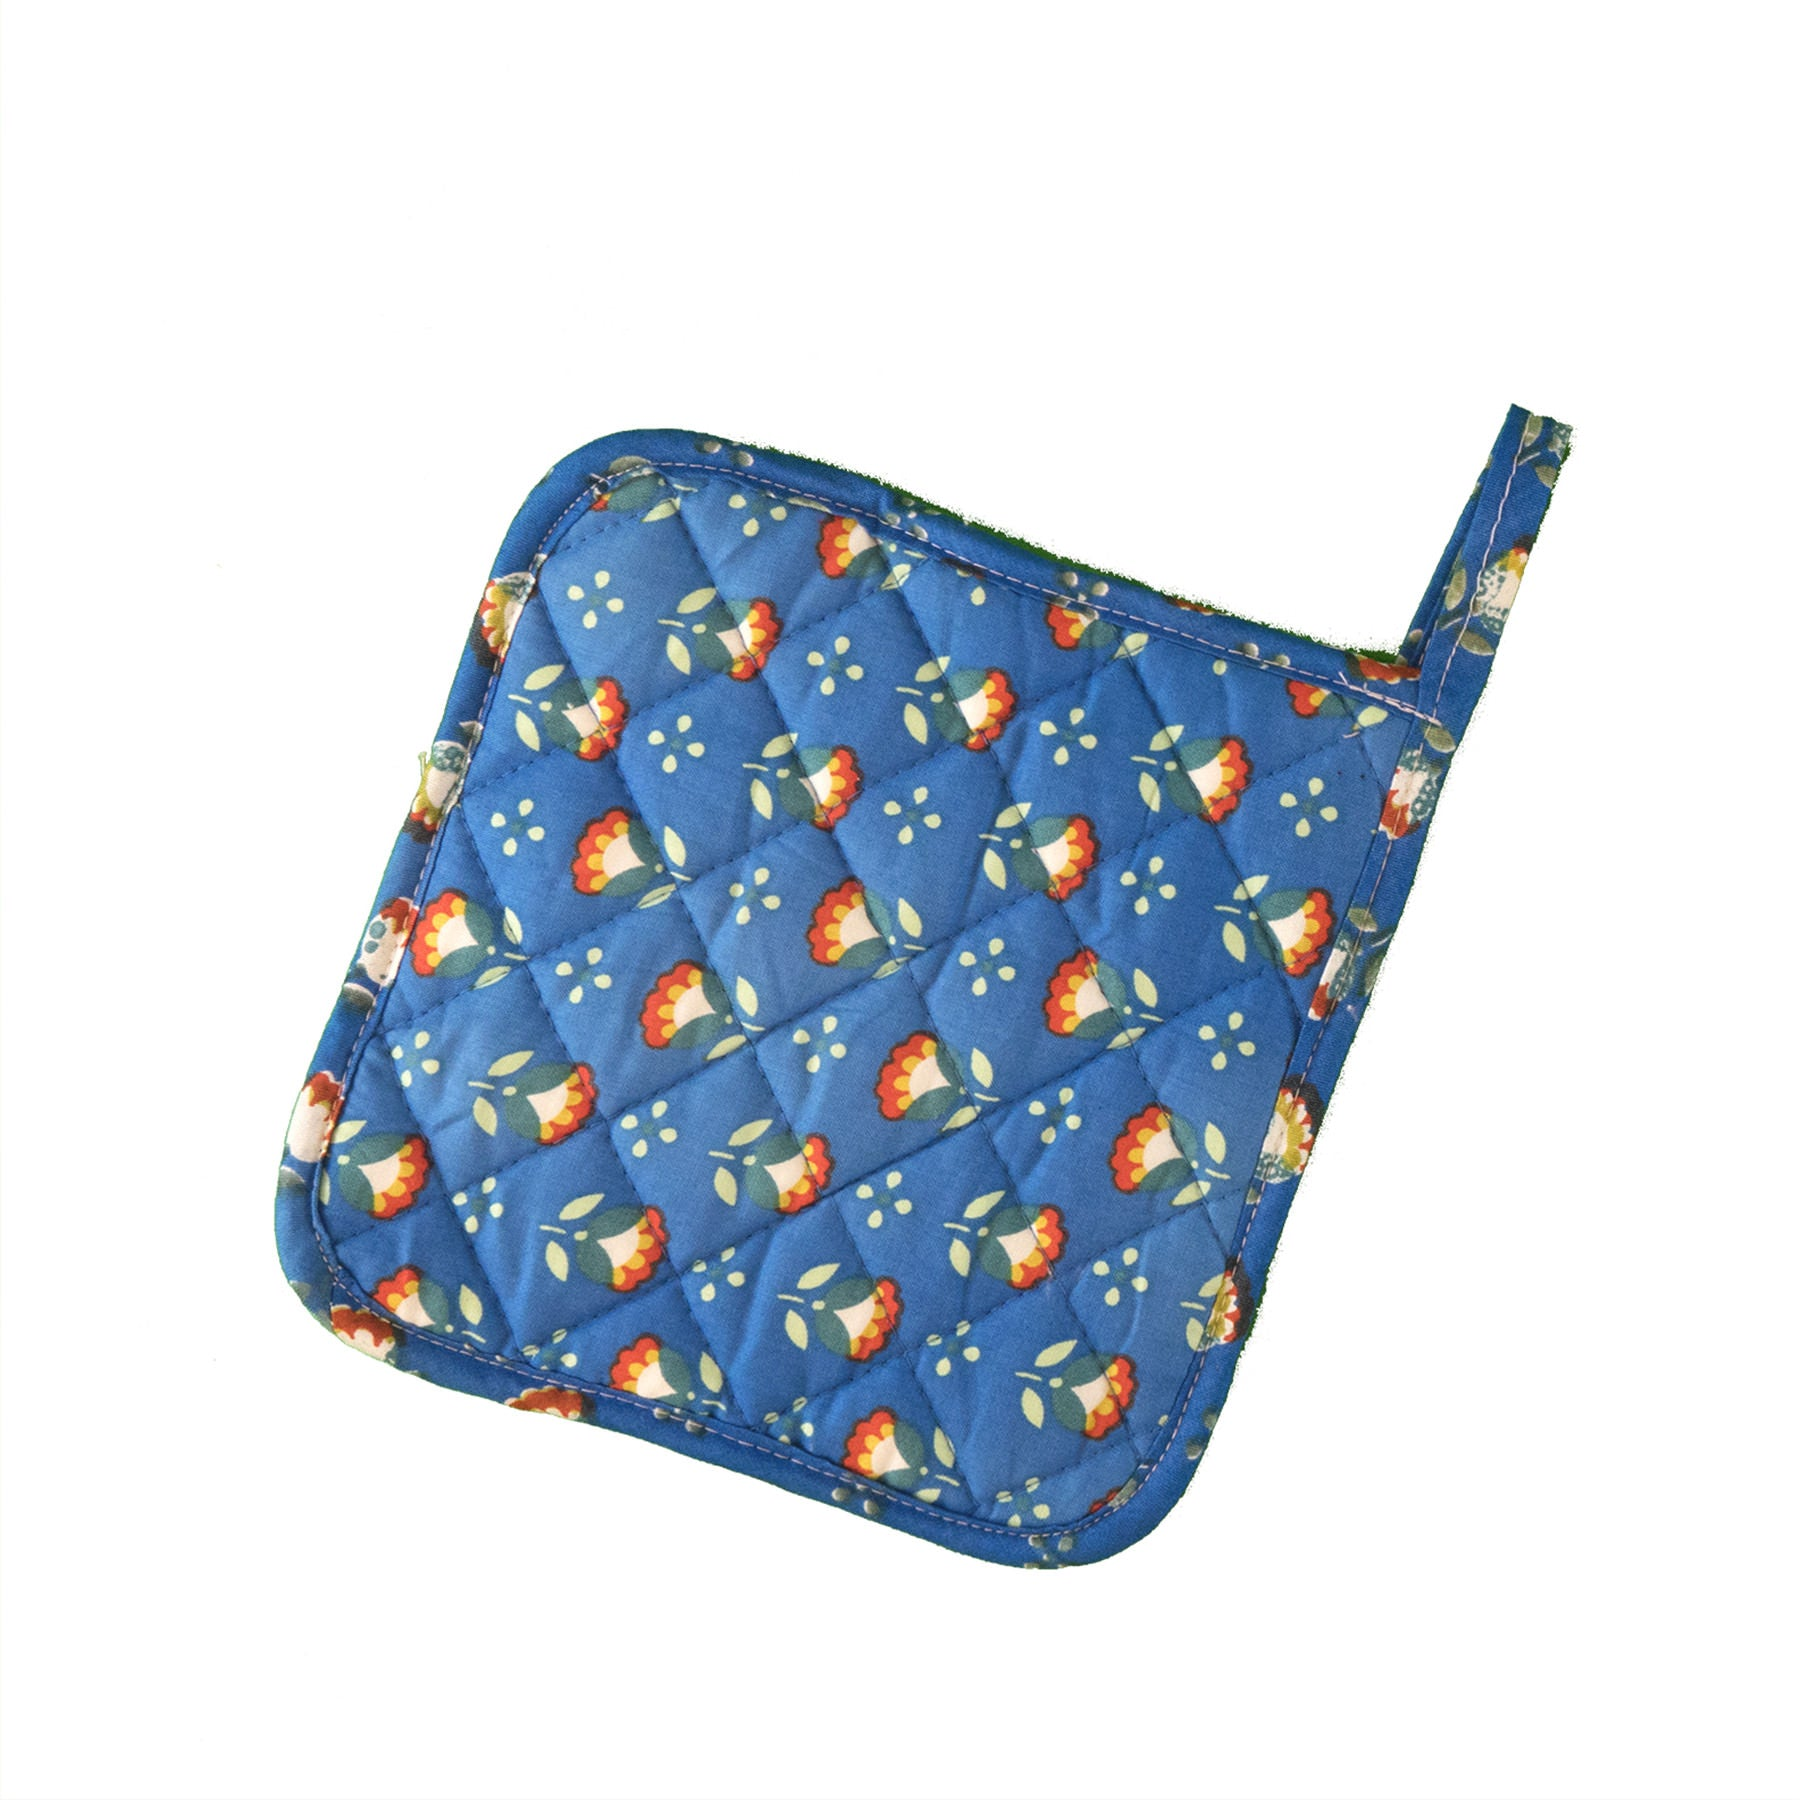 Stitch & Sparkle POT HOLDER 1 Piece Pack, Heat Resistant, 100% Cotton, Modern Scandinavian, MS Sunflower Cobalt